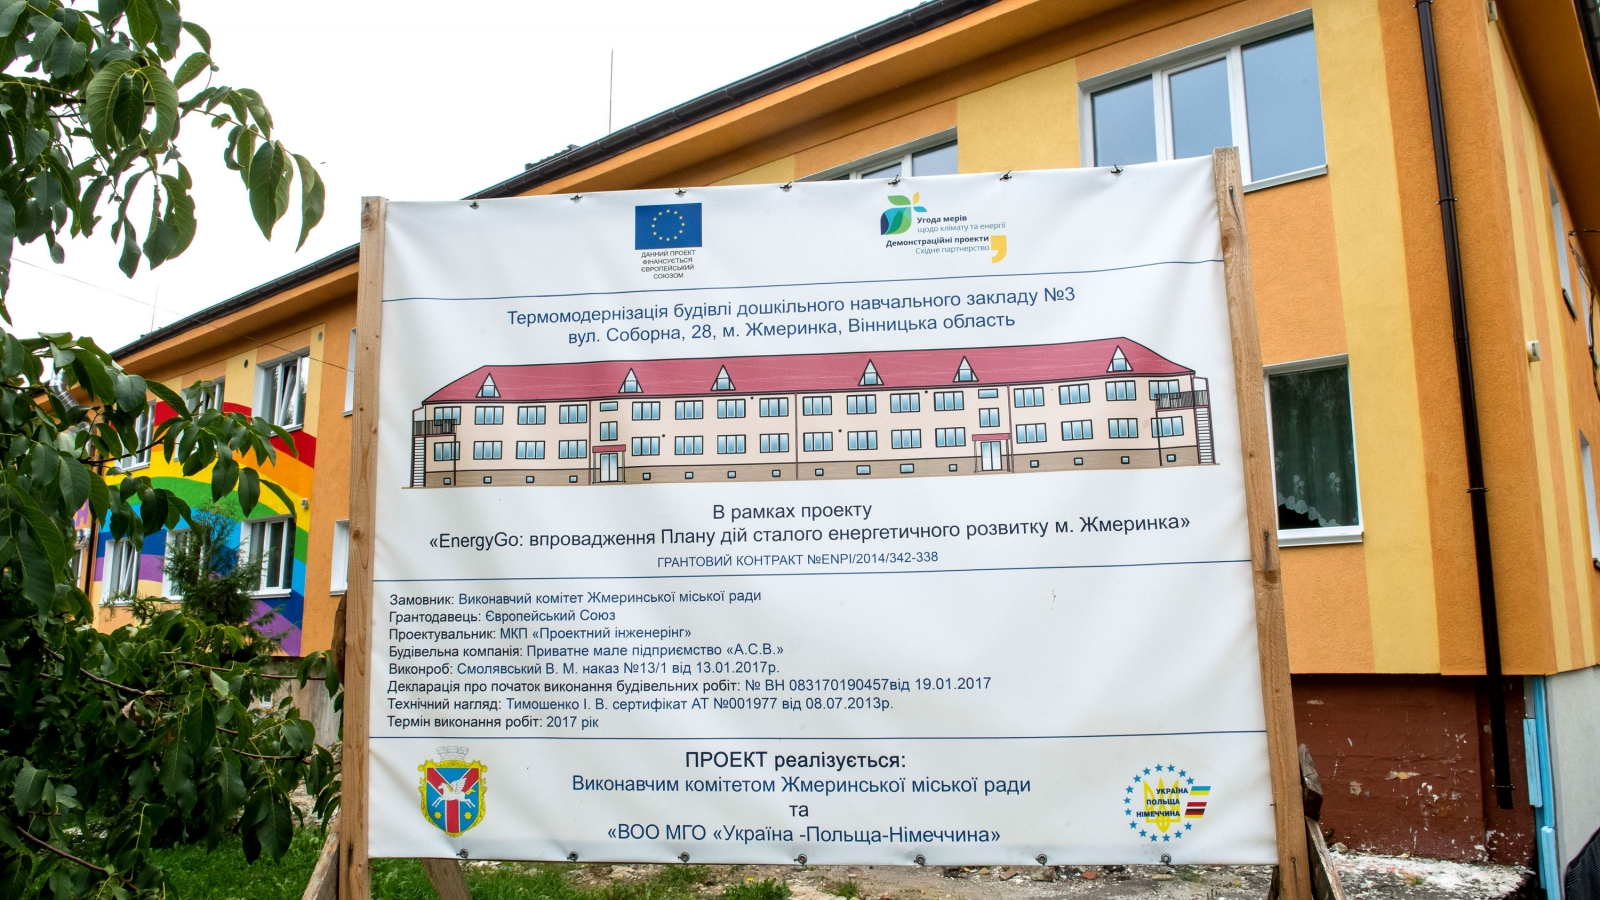 Kindergarten No. 3 will be able to save €13,000 each year thanks to EU support